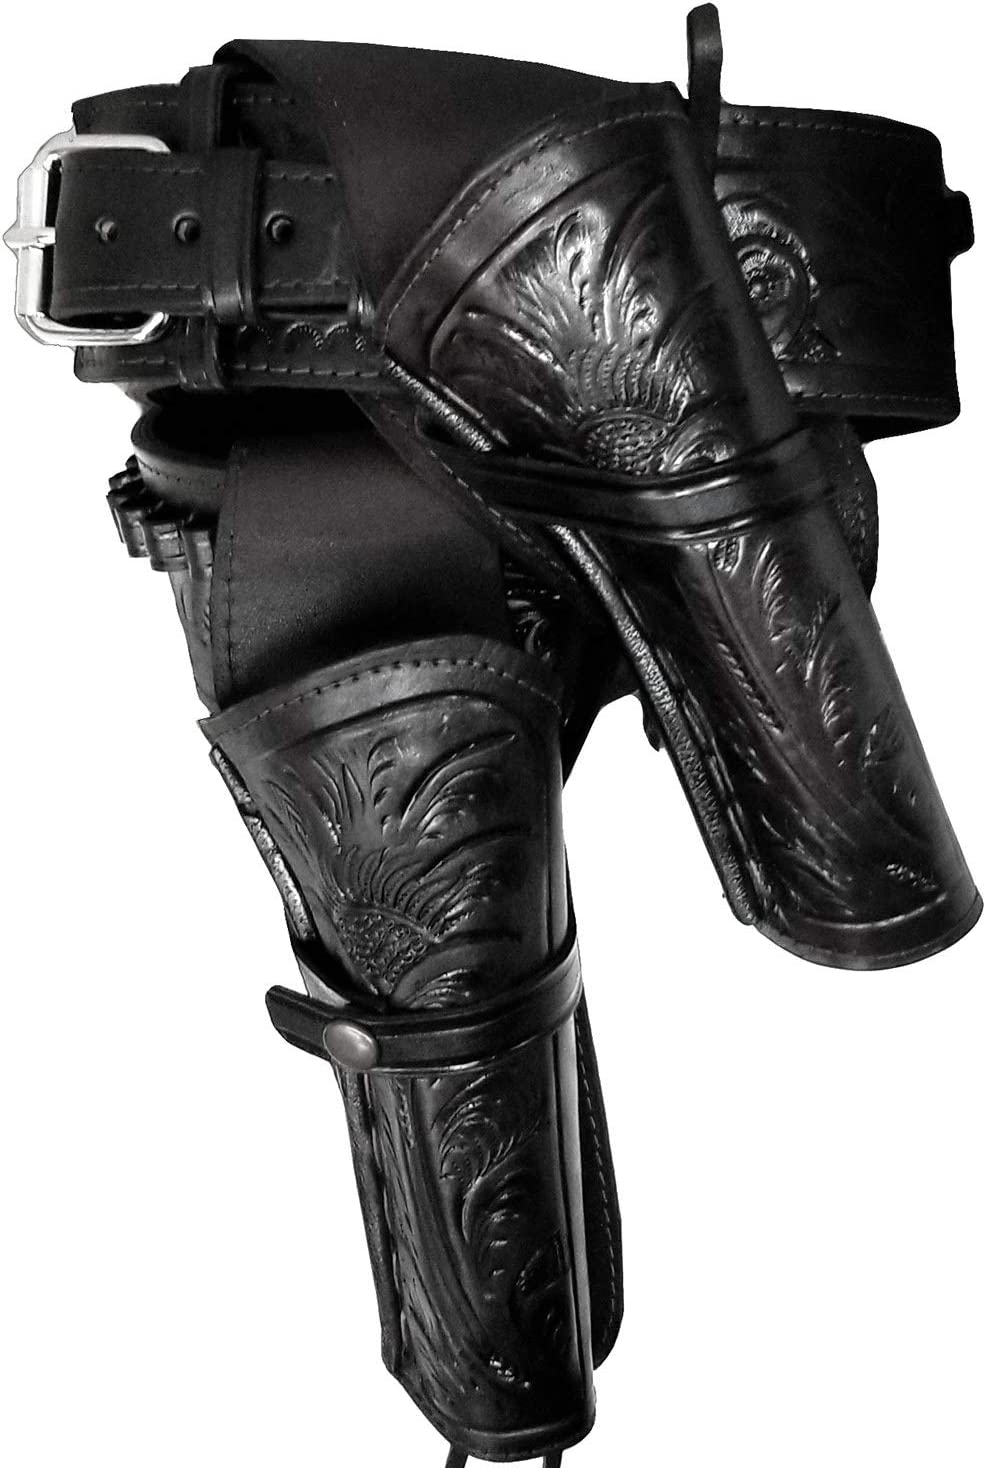 Modestone 357/38 High Ride RIGHT Cross Draw Double Holster Gun カウボーイベルト Rig Leather